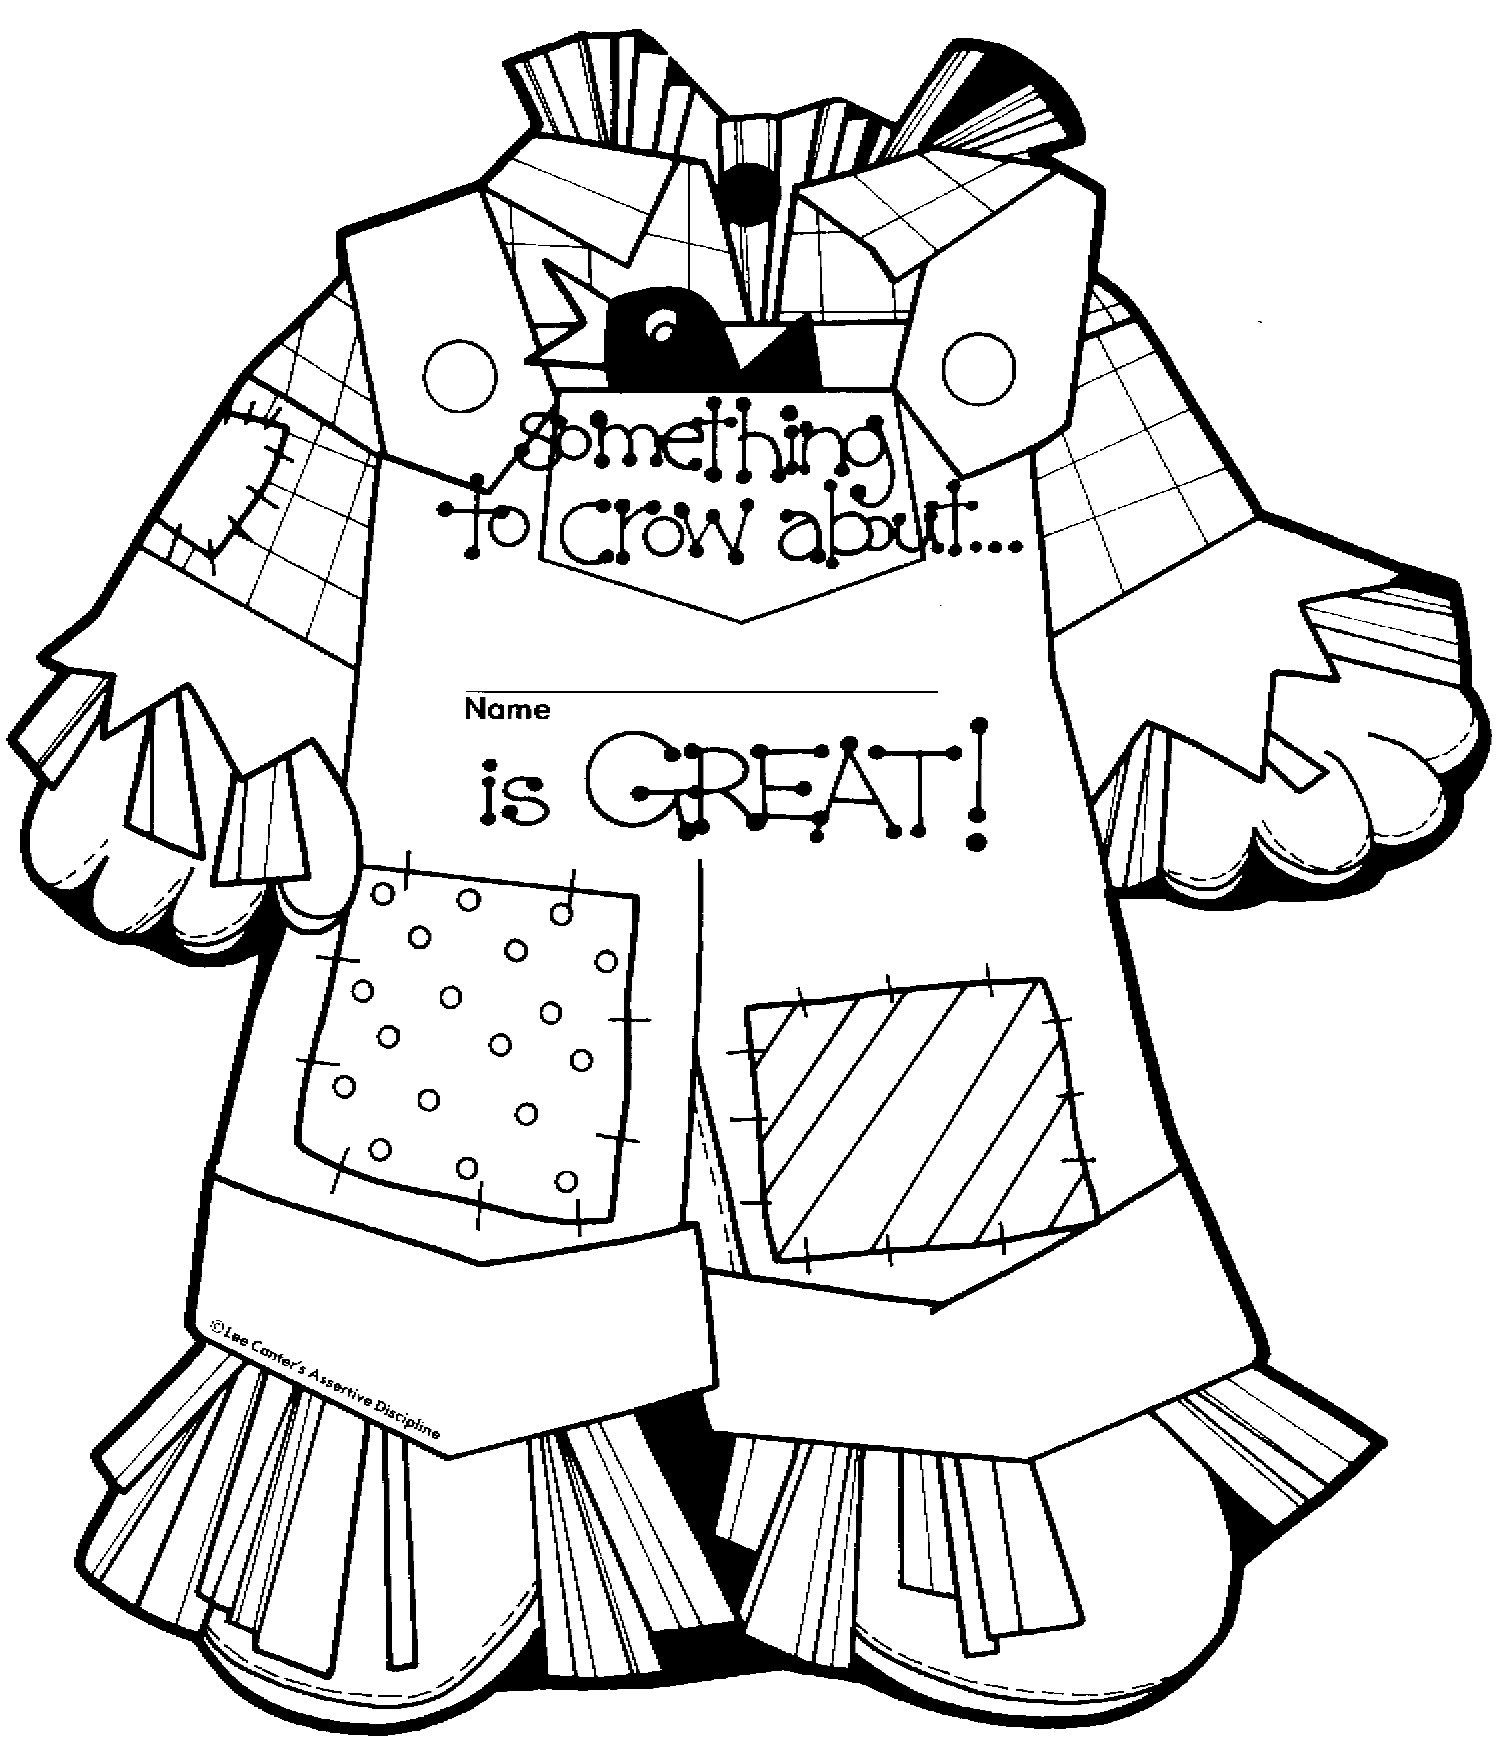 22 Beautiful Image Of Scarecrow Coloring Page Davemelillo Com Scarecrow Crafts Scarecrow Coloring Pages Free Printable Halloween Scarecrow